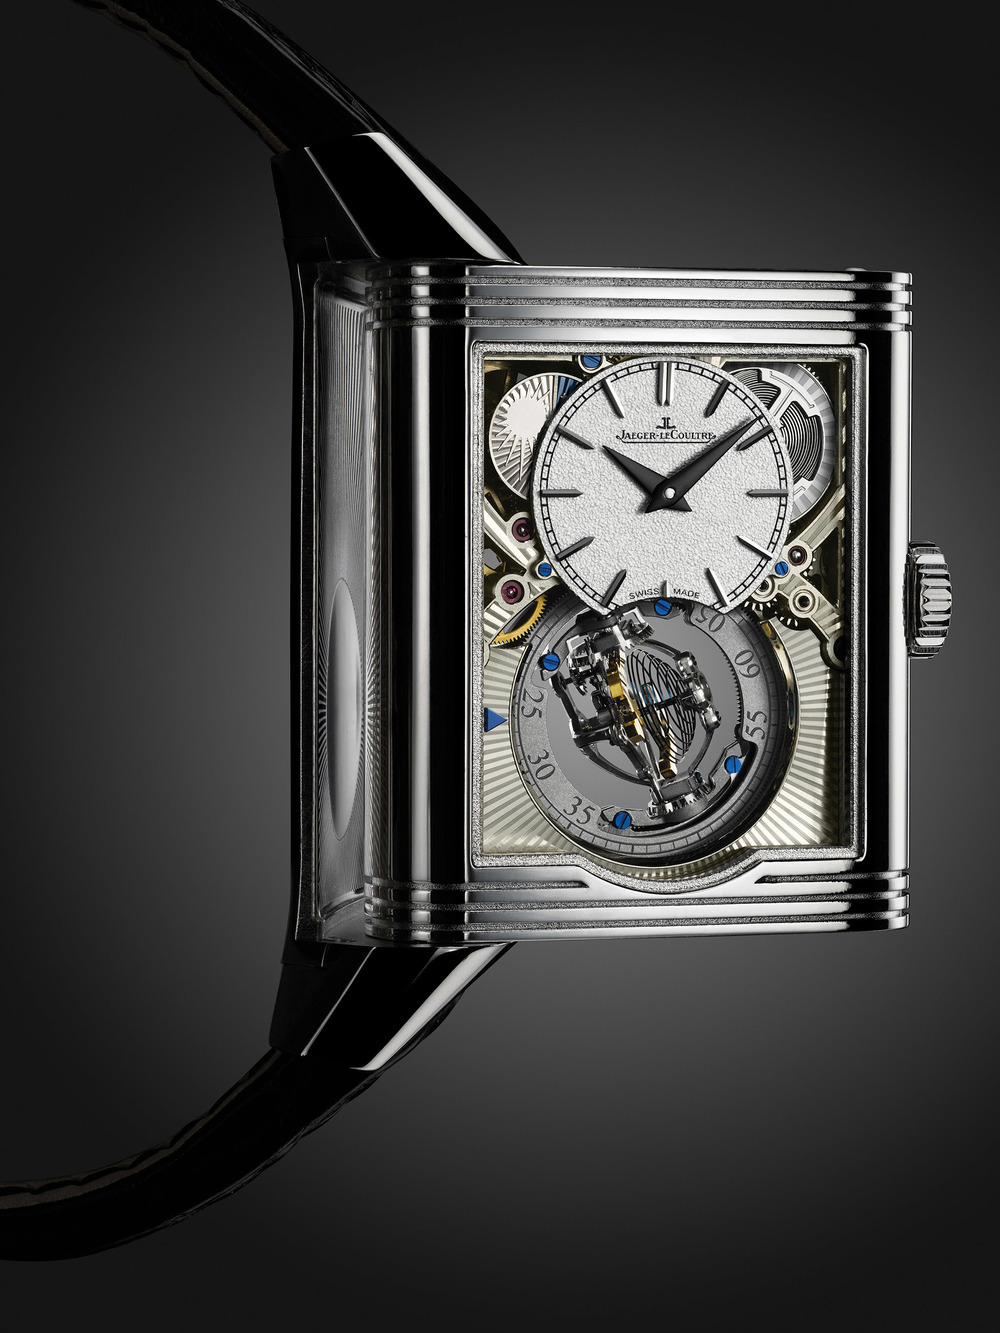 Celebrating its 85th anniversary, the iconic Reverso with swivelling case achieves harmony between mechanical performance and aesthetic elegance. The star model, Reverso Tribute Gyrotourbillon is embellished with engraving and guilloche motif.